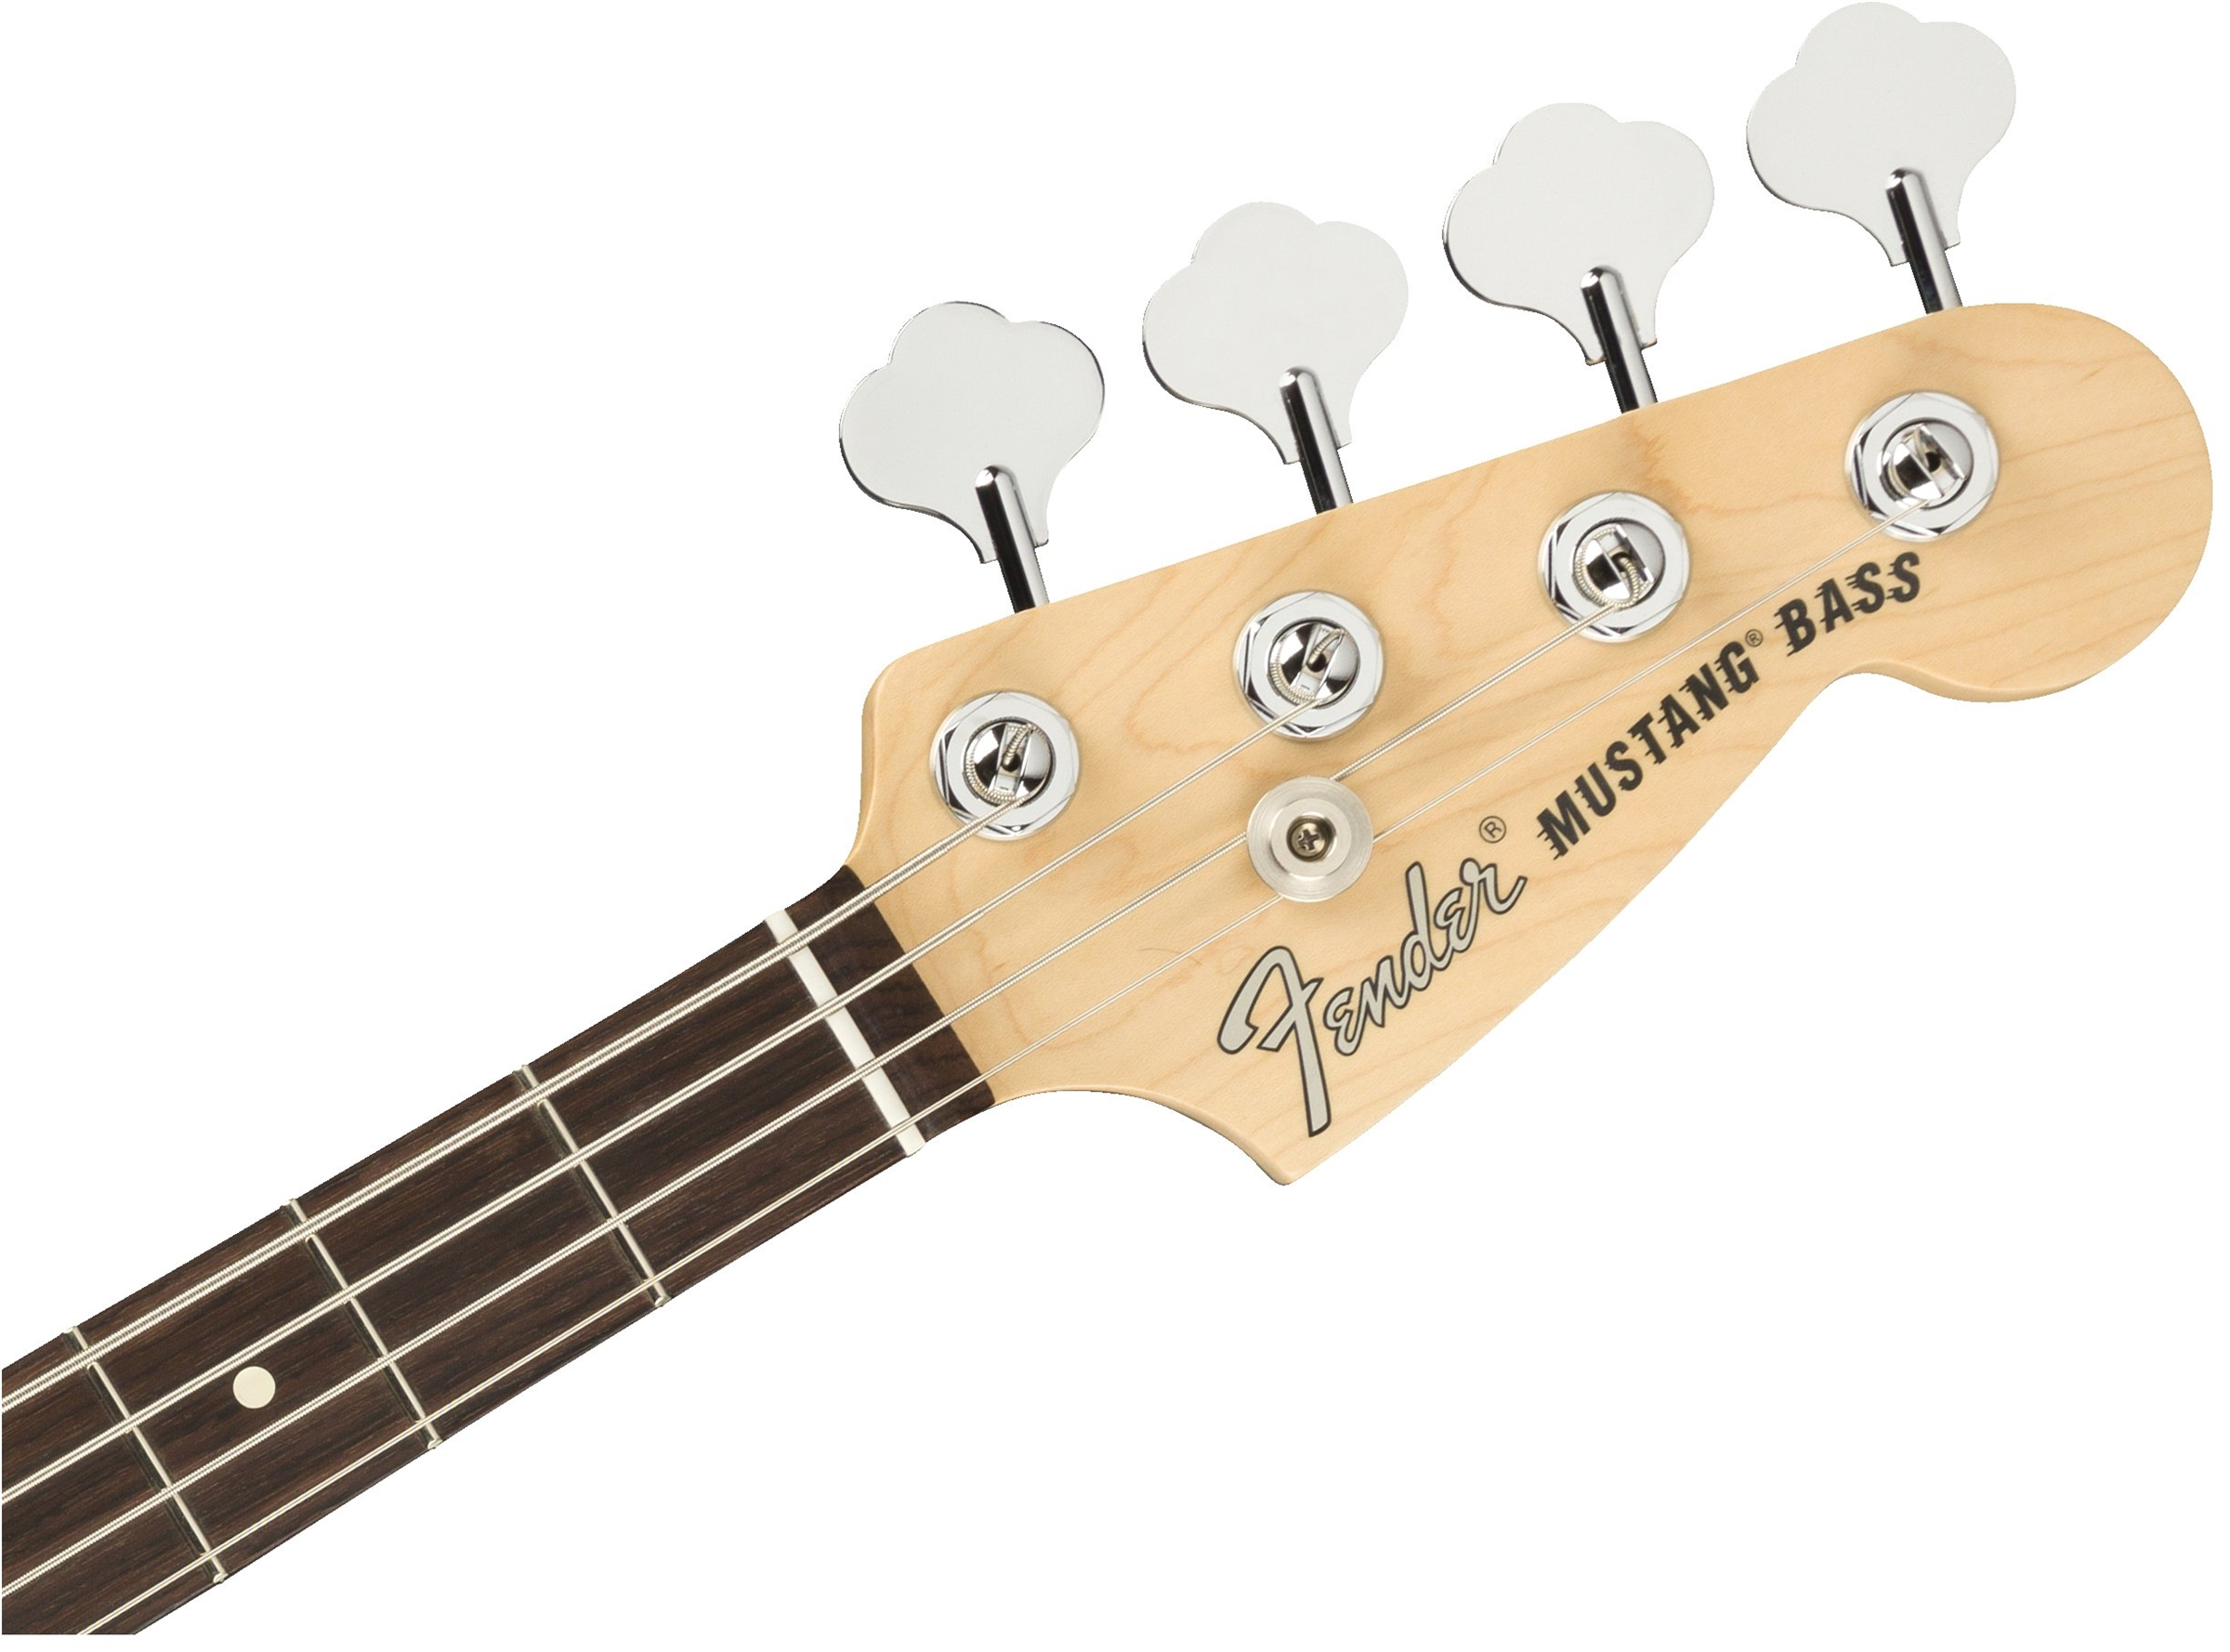 American Performer Mustang Bass  3-Color Sunburstヘッド画像